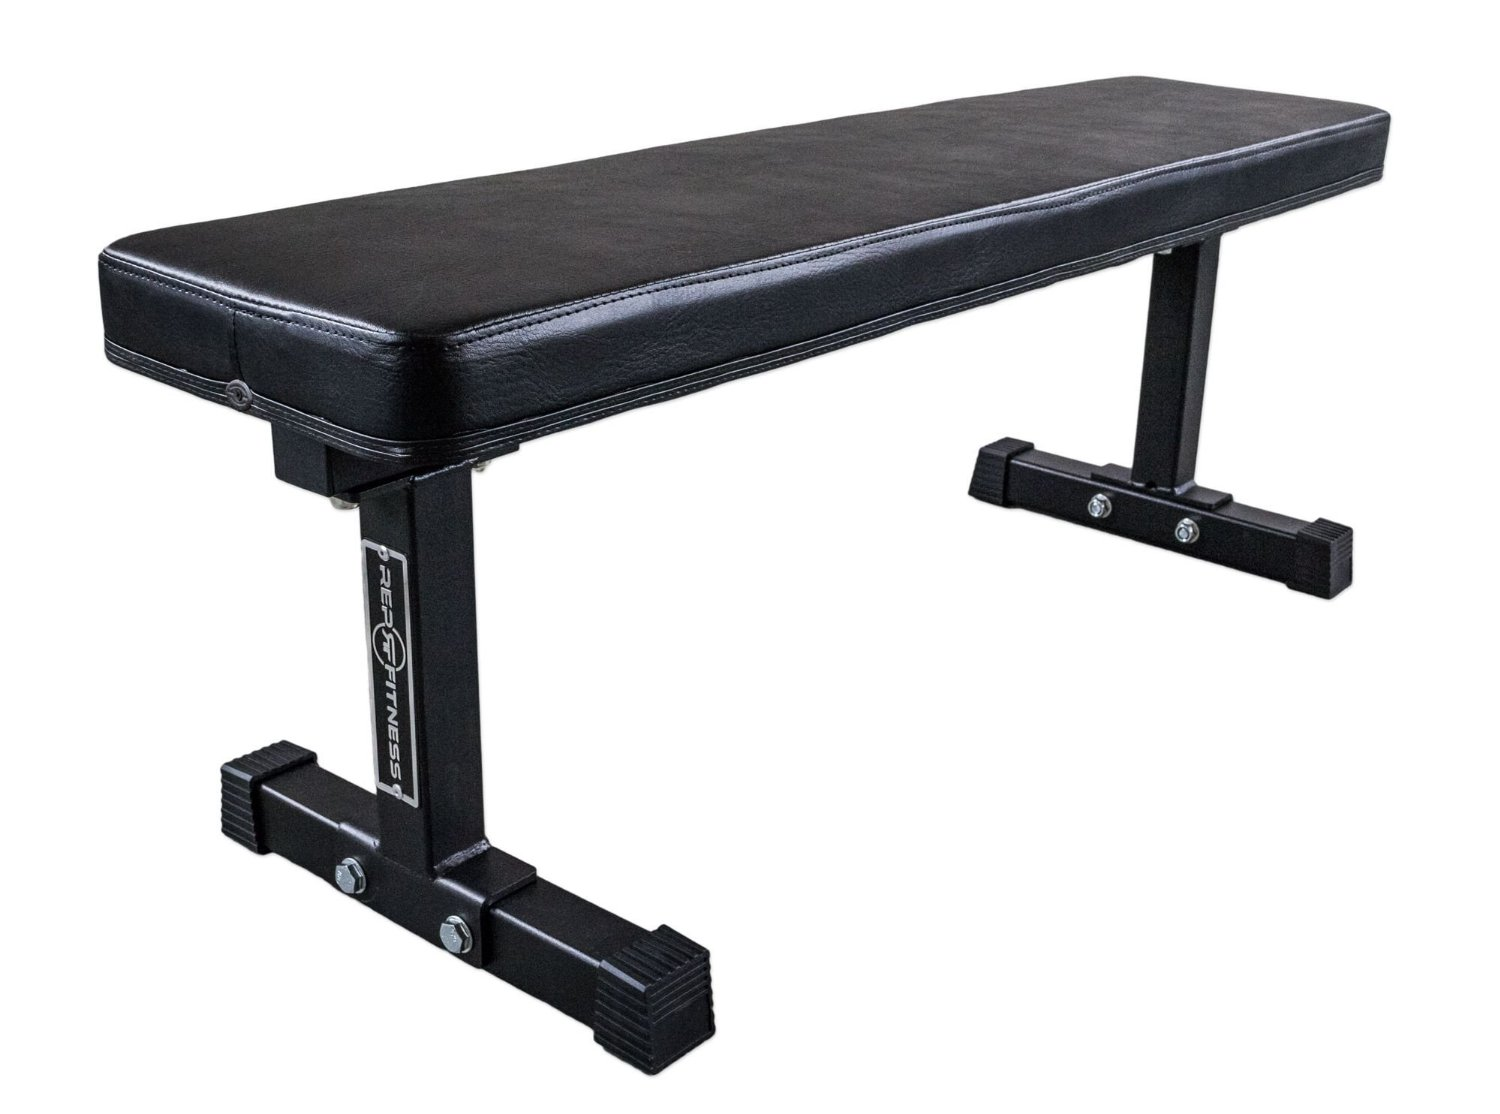 Best Weight Benches 101 How To Choose The Best Weight Bench For Home Use Home Gym Rat